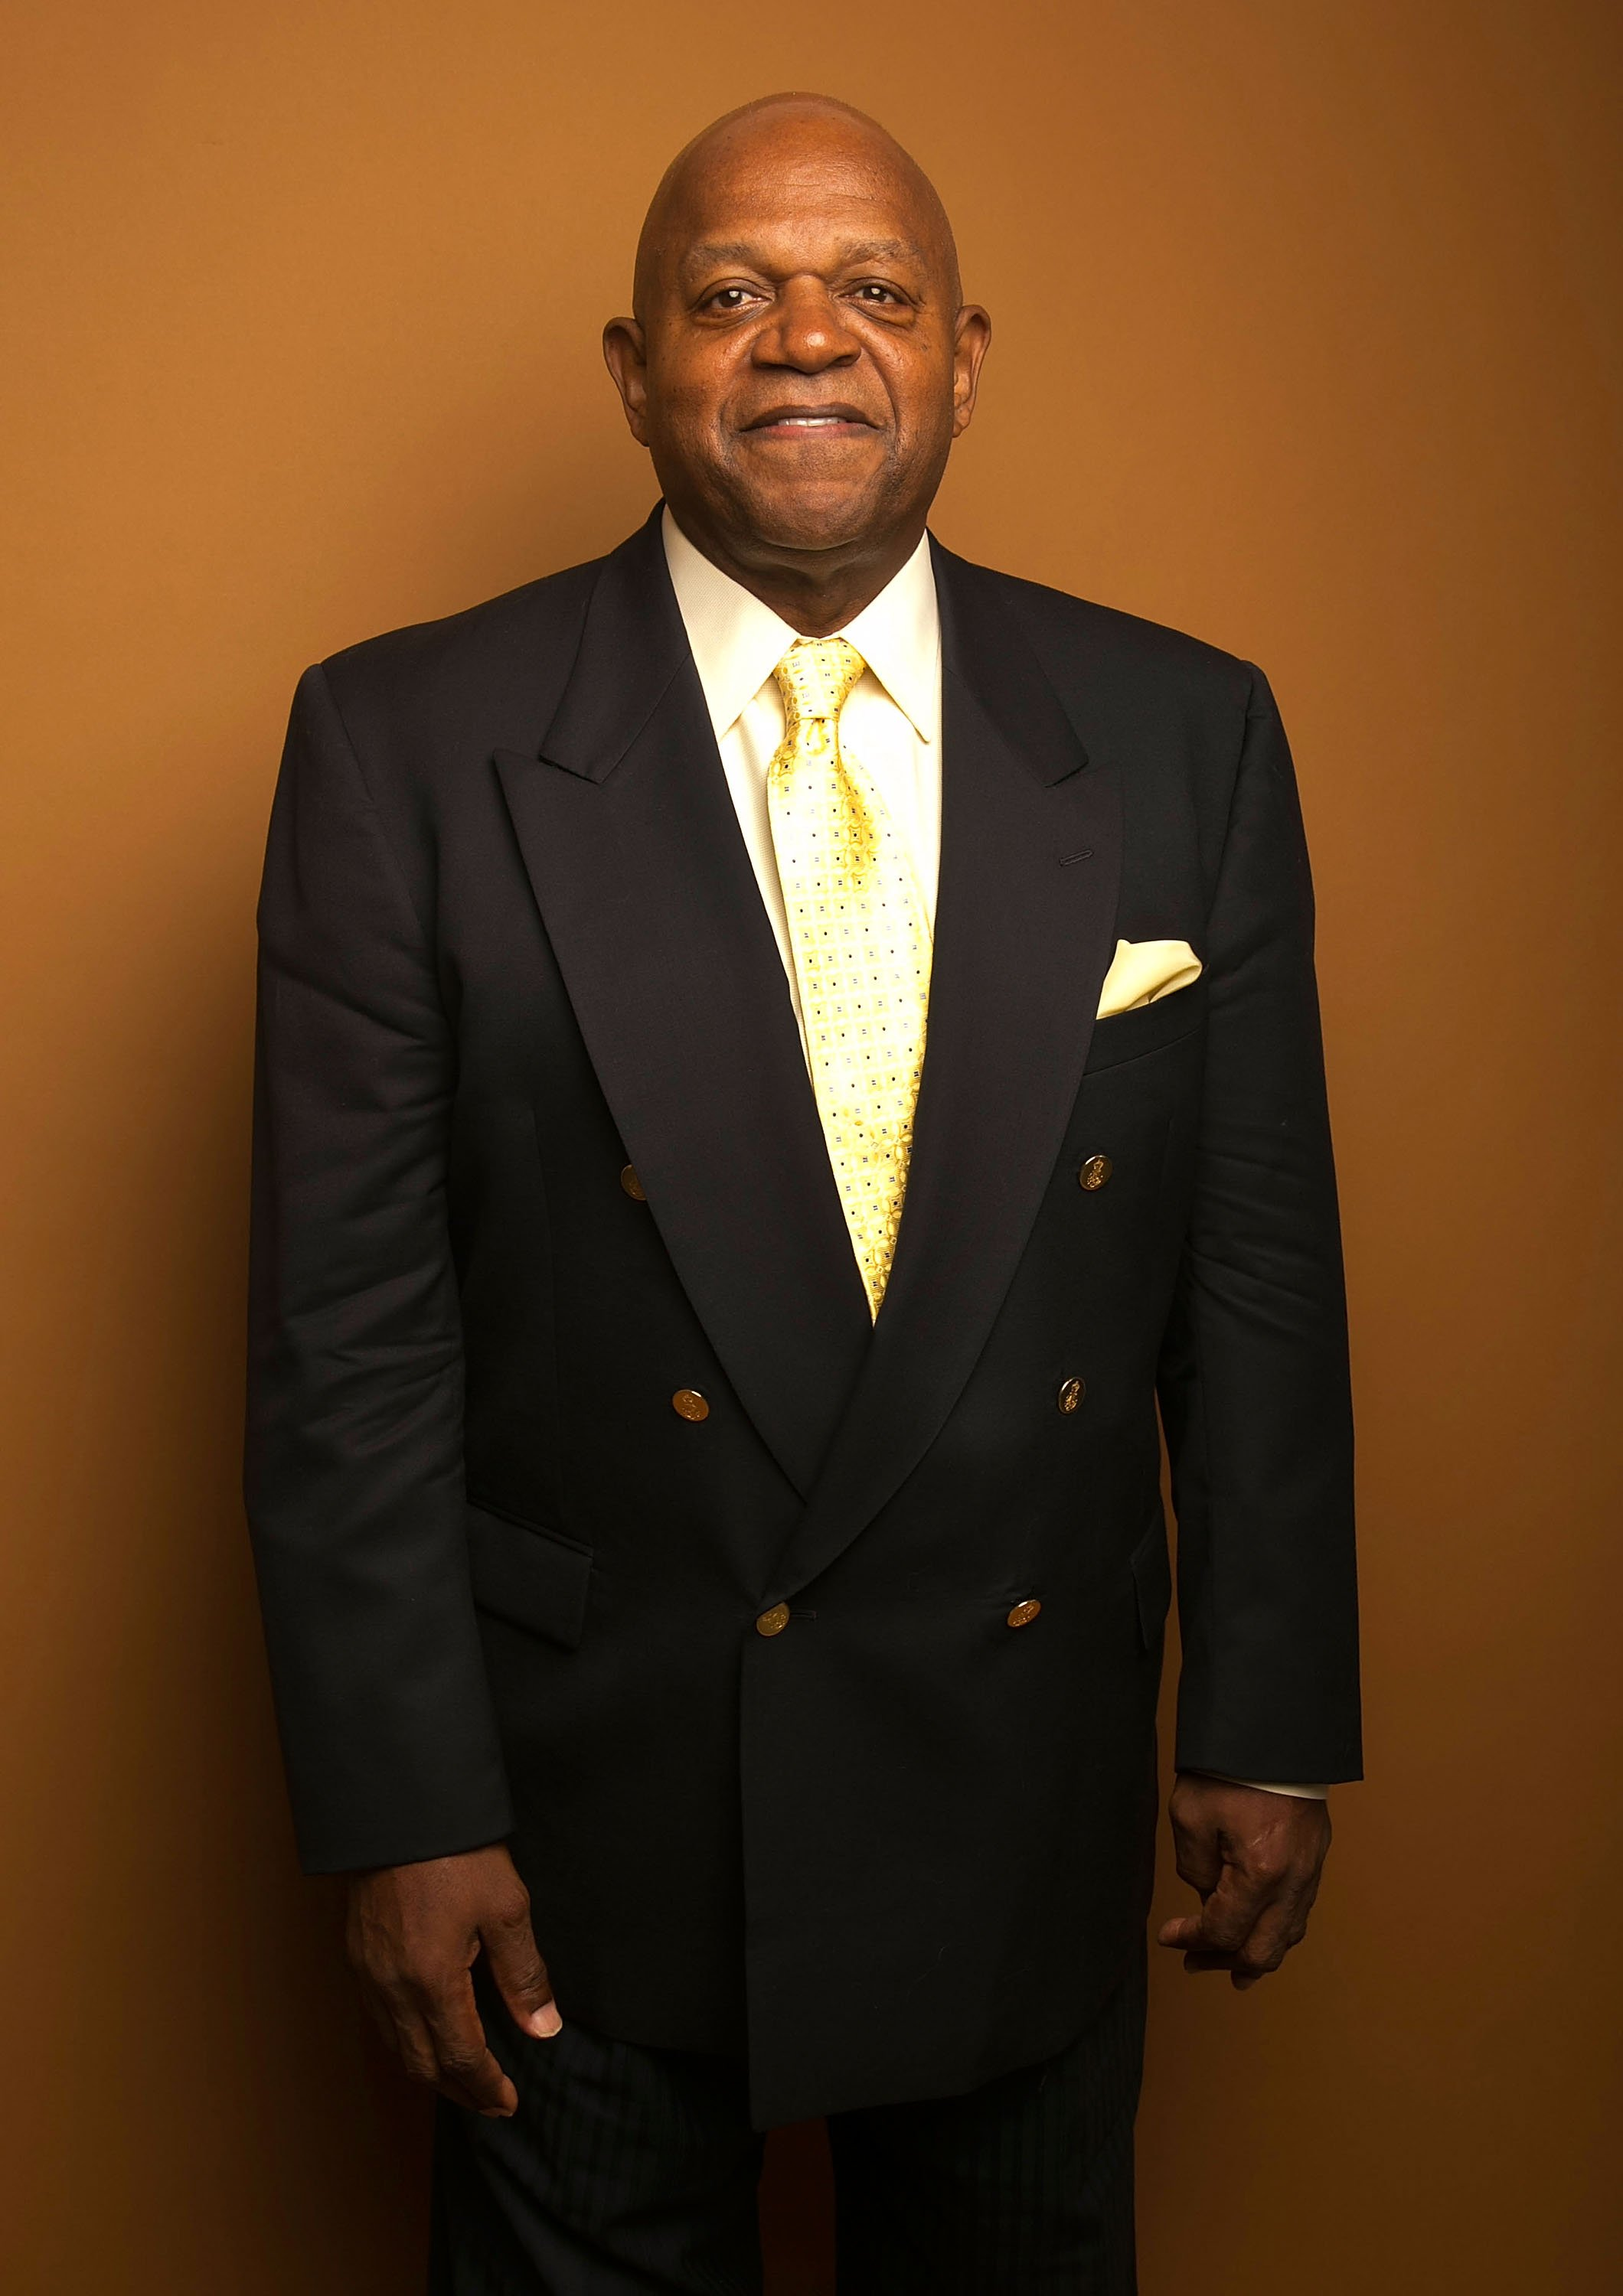 Charles S. Dutton poses for a photo during the 2014 American Black Film Festival on June 21, 2014 in New York City.   Photo: Getty Images